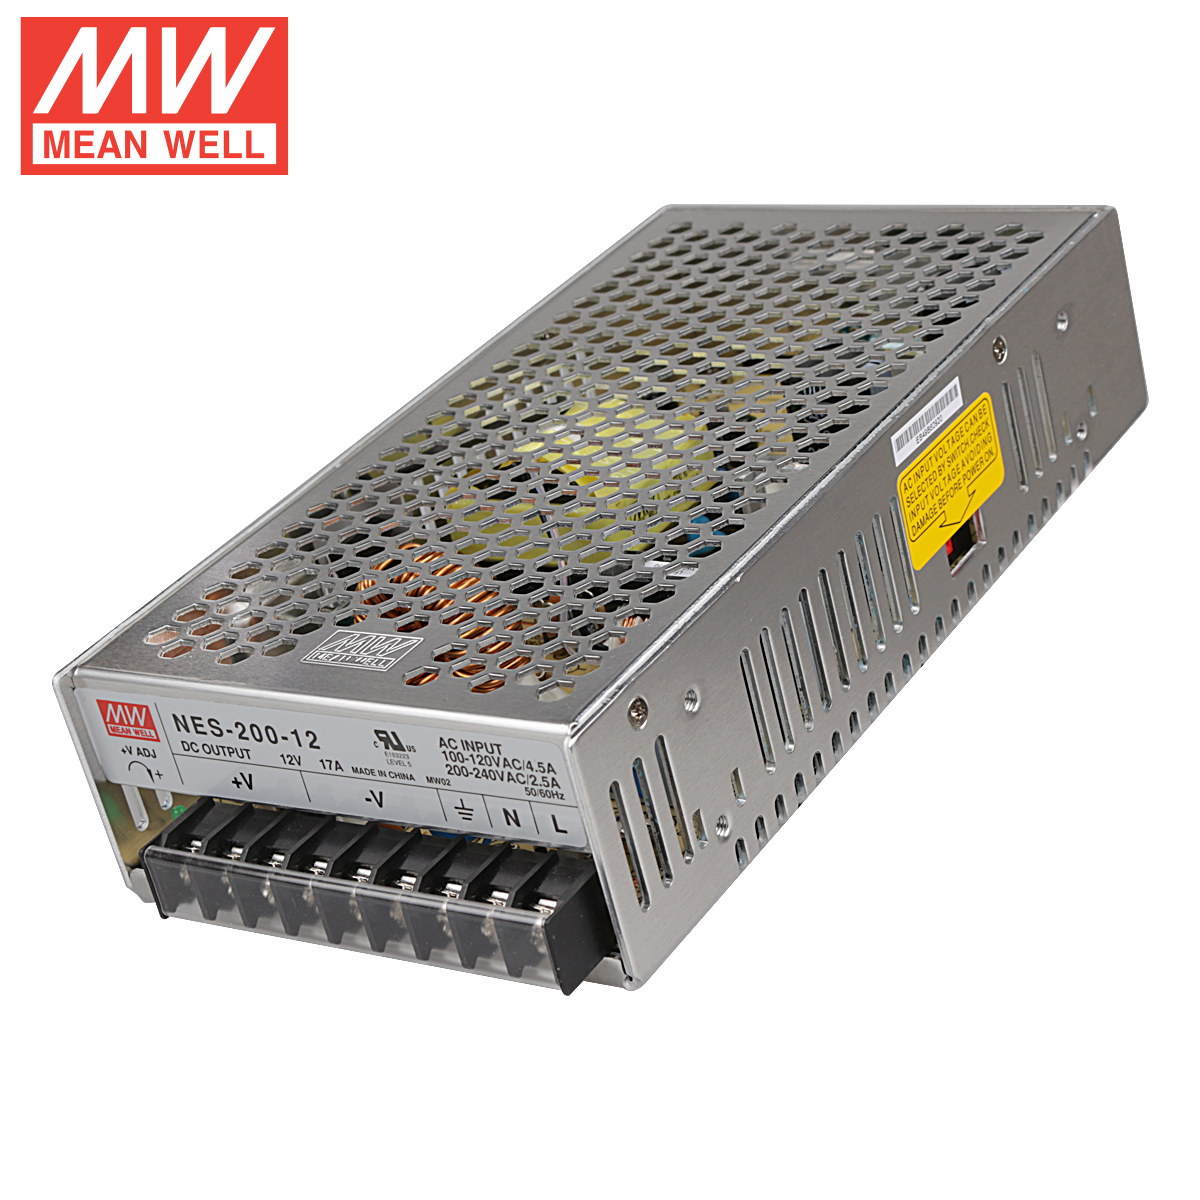 Genuine taiwan meanwell switching power supply nes-200-12 w 12v17a led monitor power supply camera